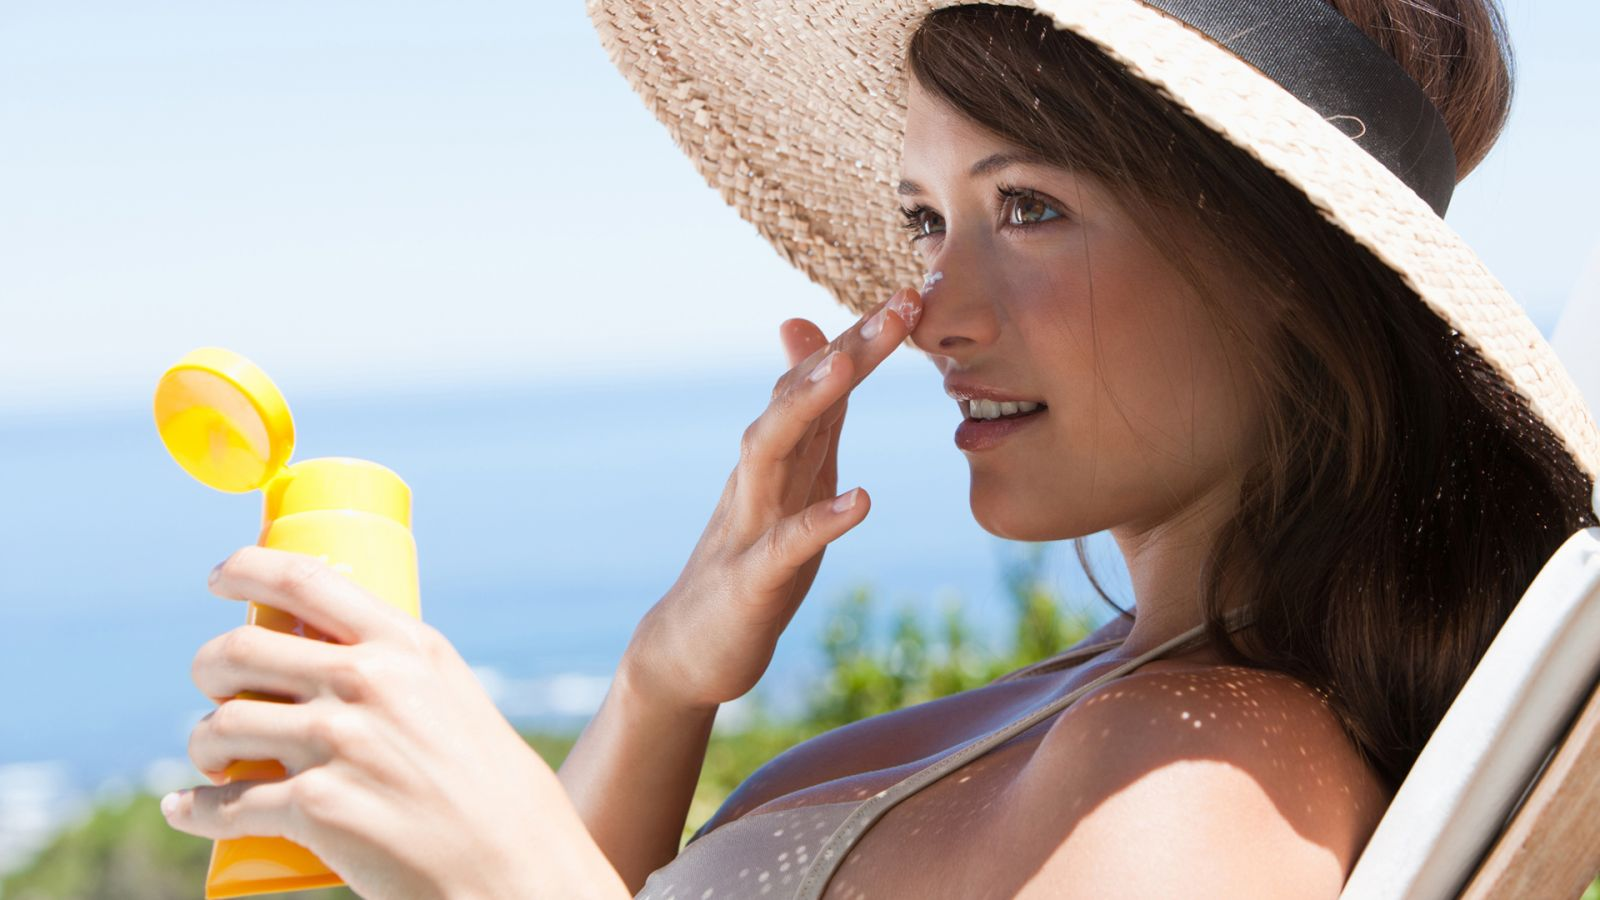 Image result for sun protection picture of girl applying sunblock